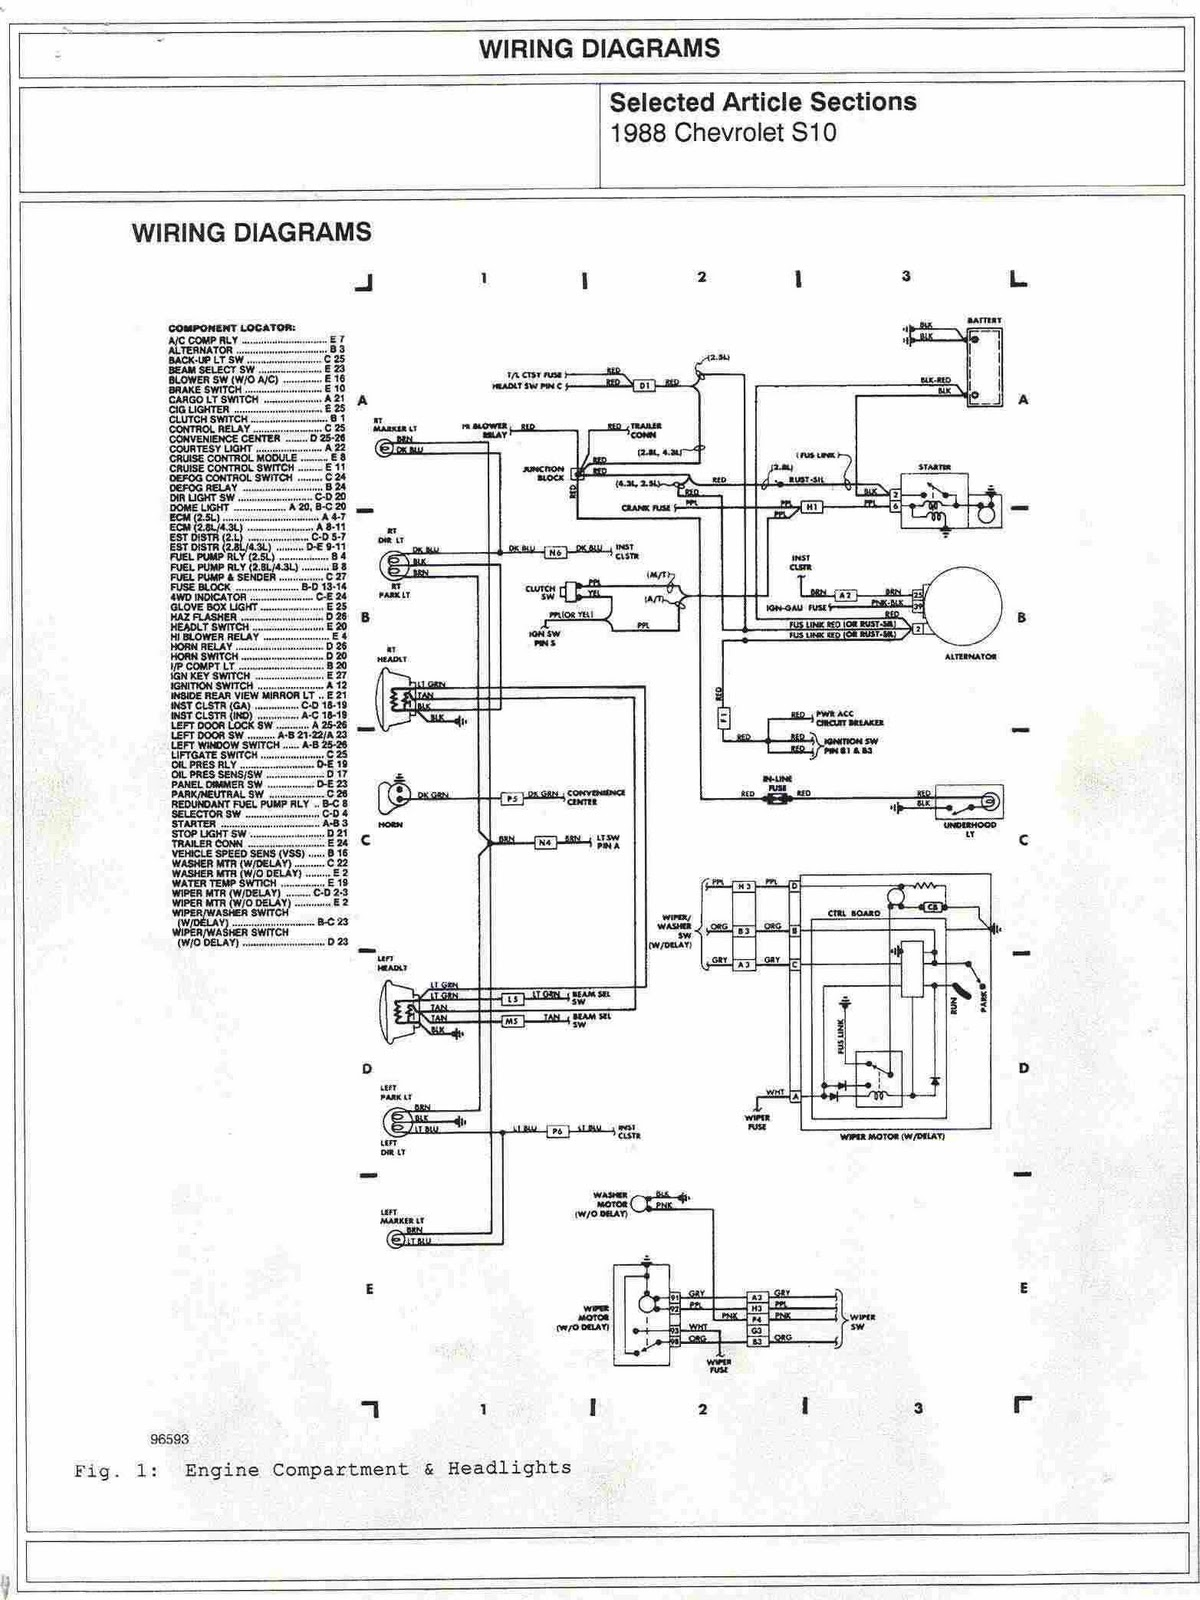 88 chevy wire diagram wiring diagram details [ 1200 x 1600 Pixel ]